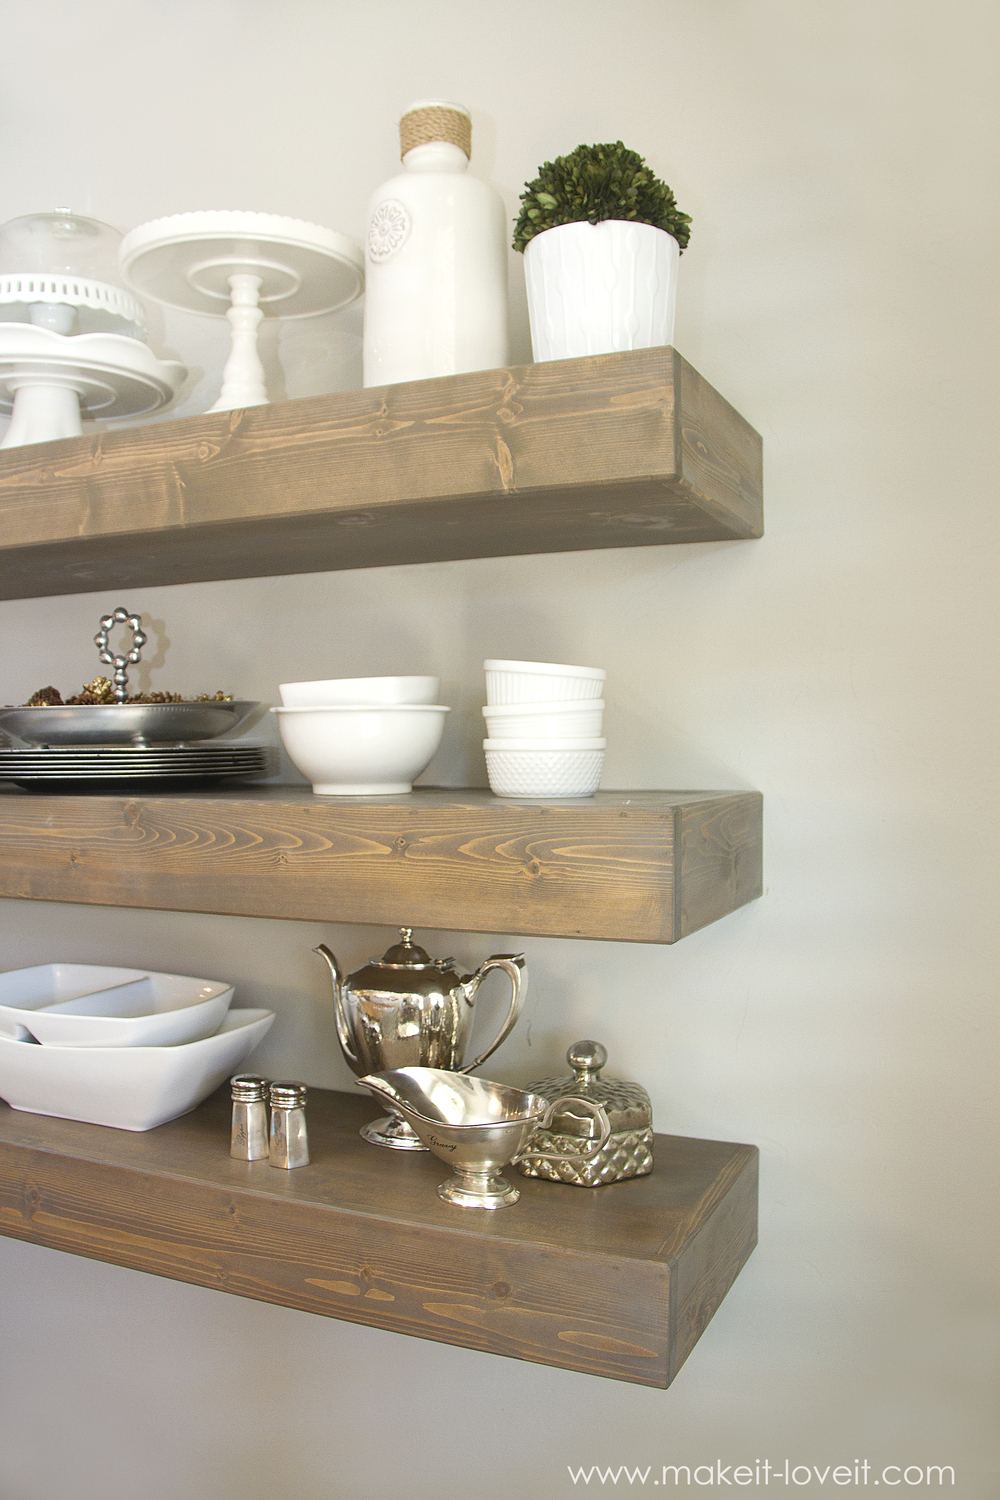 how build simple floating shelves for any room the house img inches deep bookshelf depth oak stove beams white kitchen with dark wood island ikea slim shelf drill set canadian